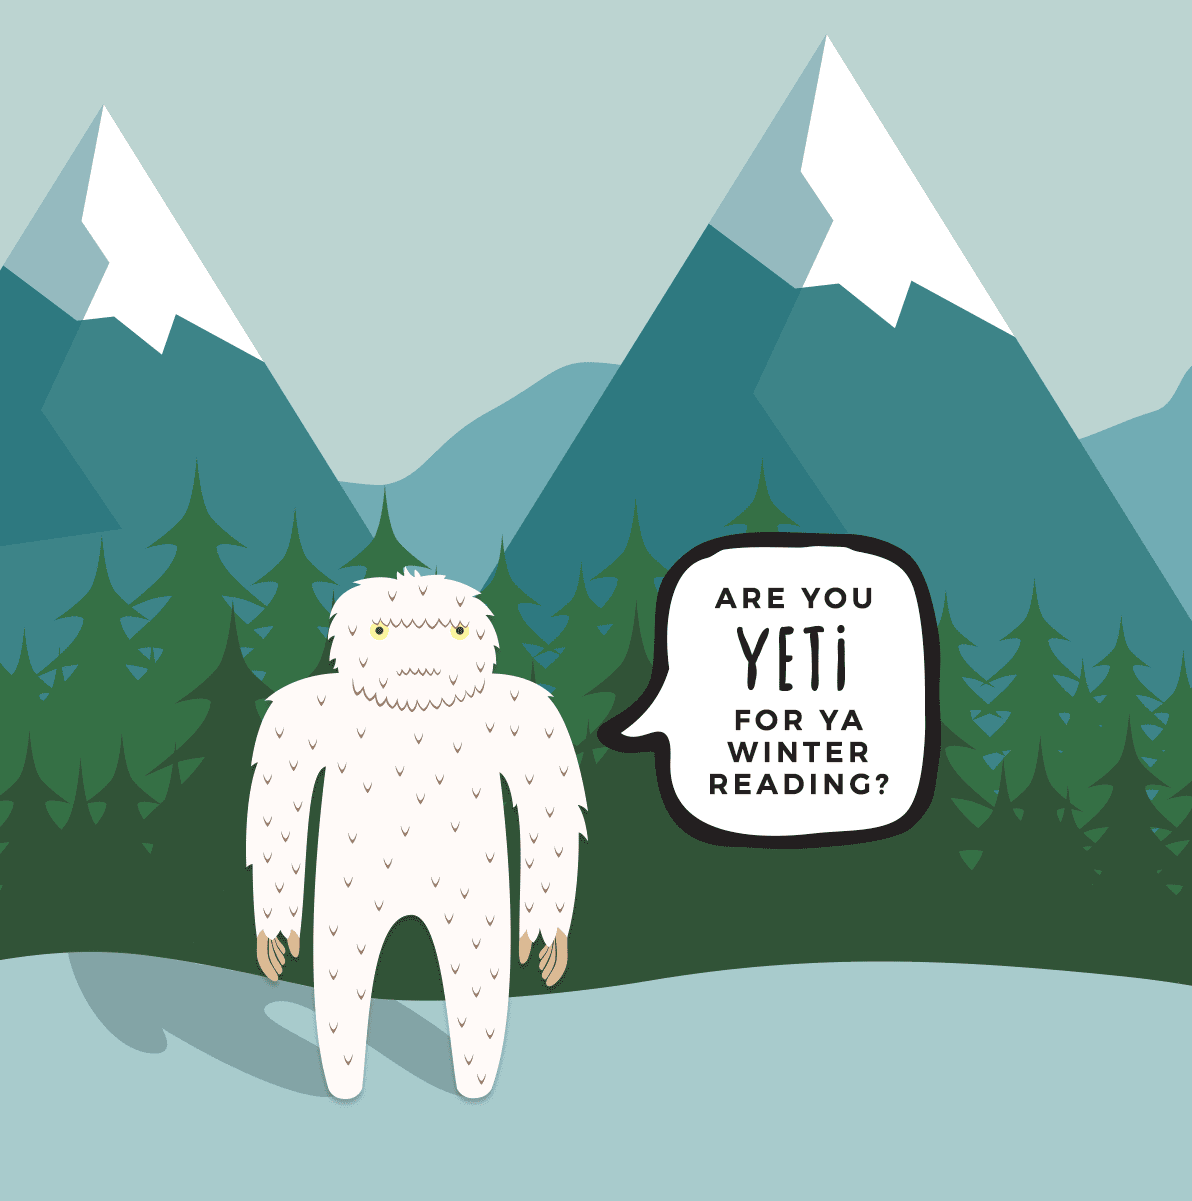 are you yeti for ya winter reading